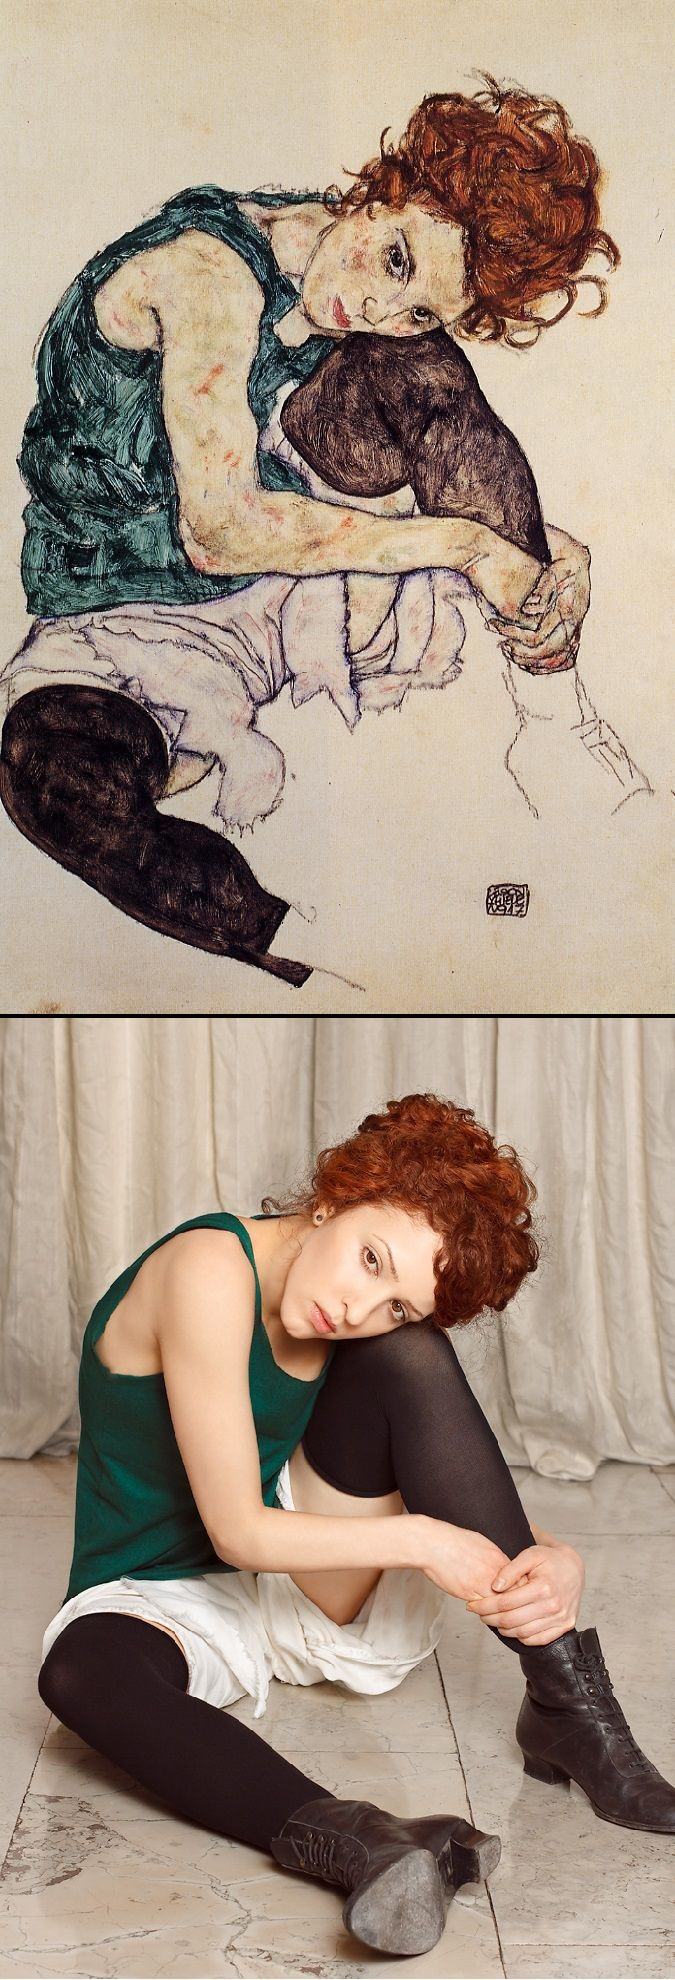 Seated Woman with Bent Knee by Egon Schiele (1917) / Seated Woman with Bent Knee by The Essence of Decadence http://www.tanialazlo.com/the_essence_of_decadence.html